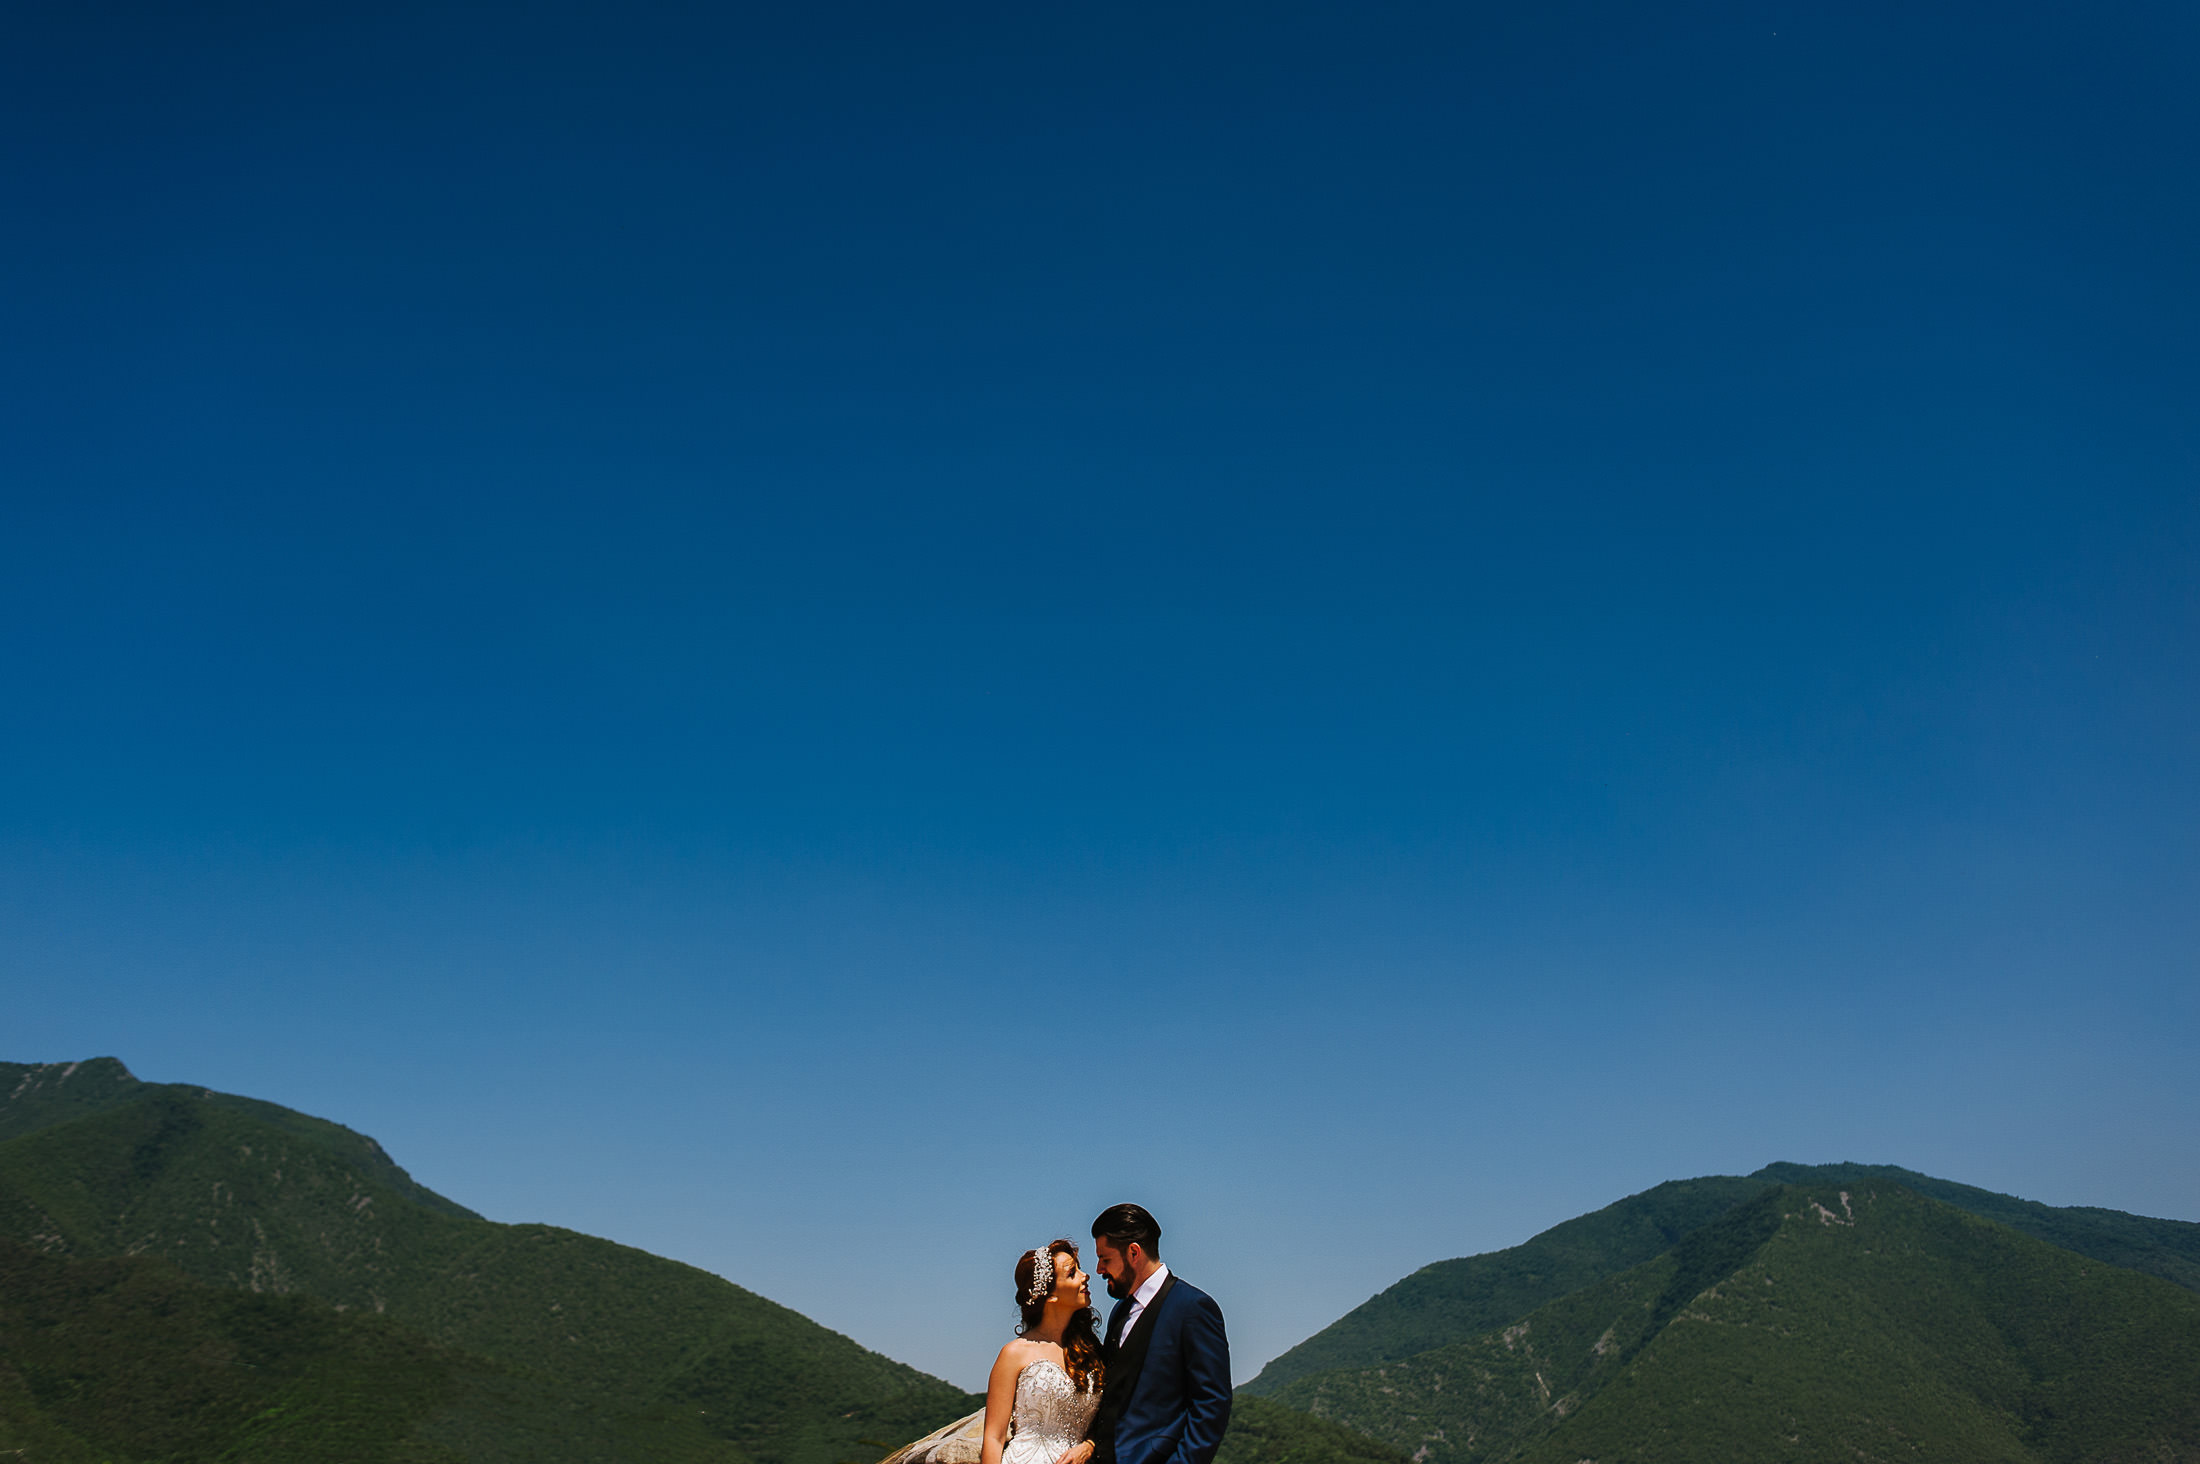 Bride & Groom posing with mountains in the back in Santiago Nuevo Leon